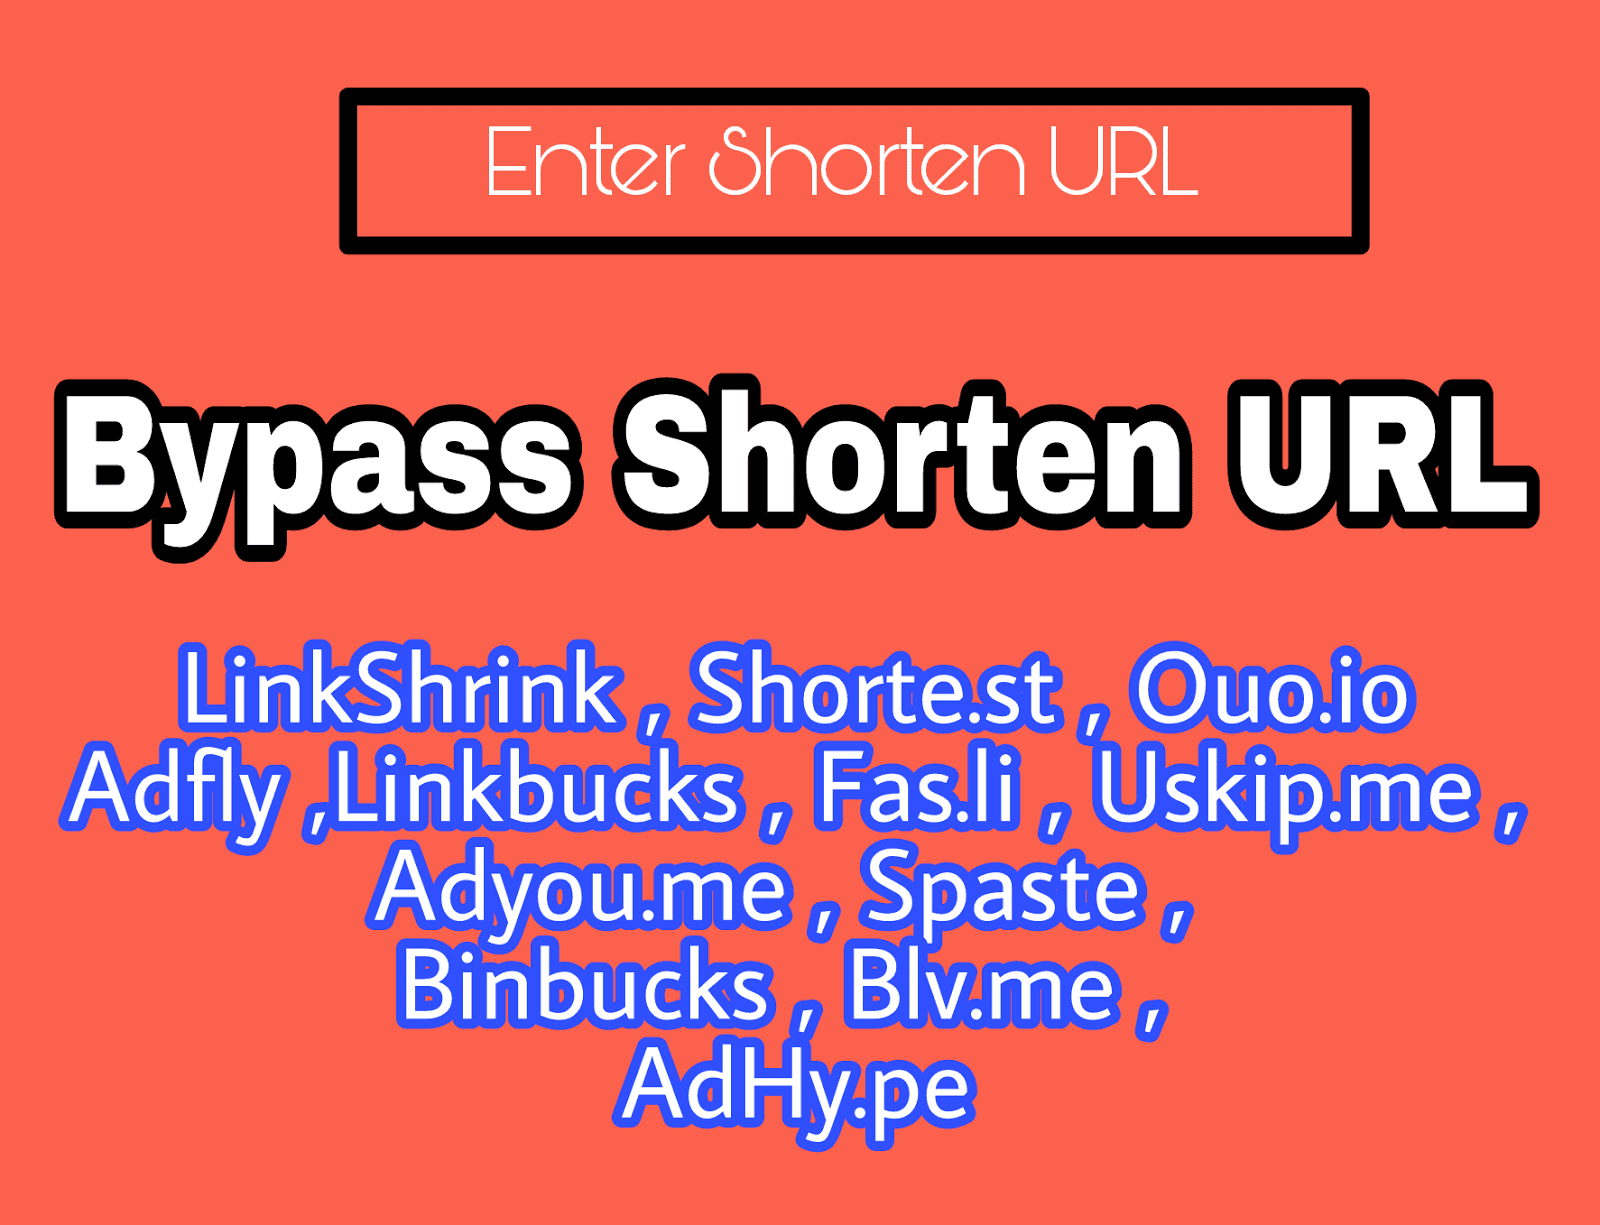 List of Synonyms and Antonyms of the Word: linkbucks pre 4